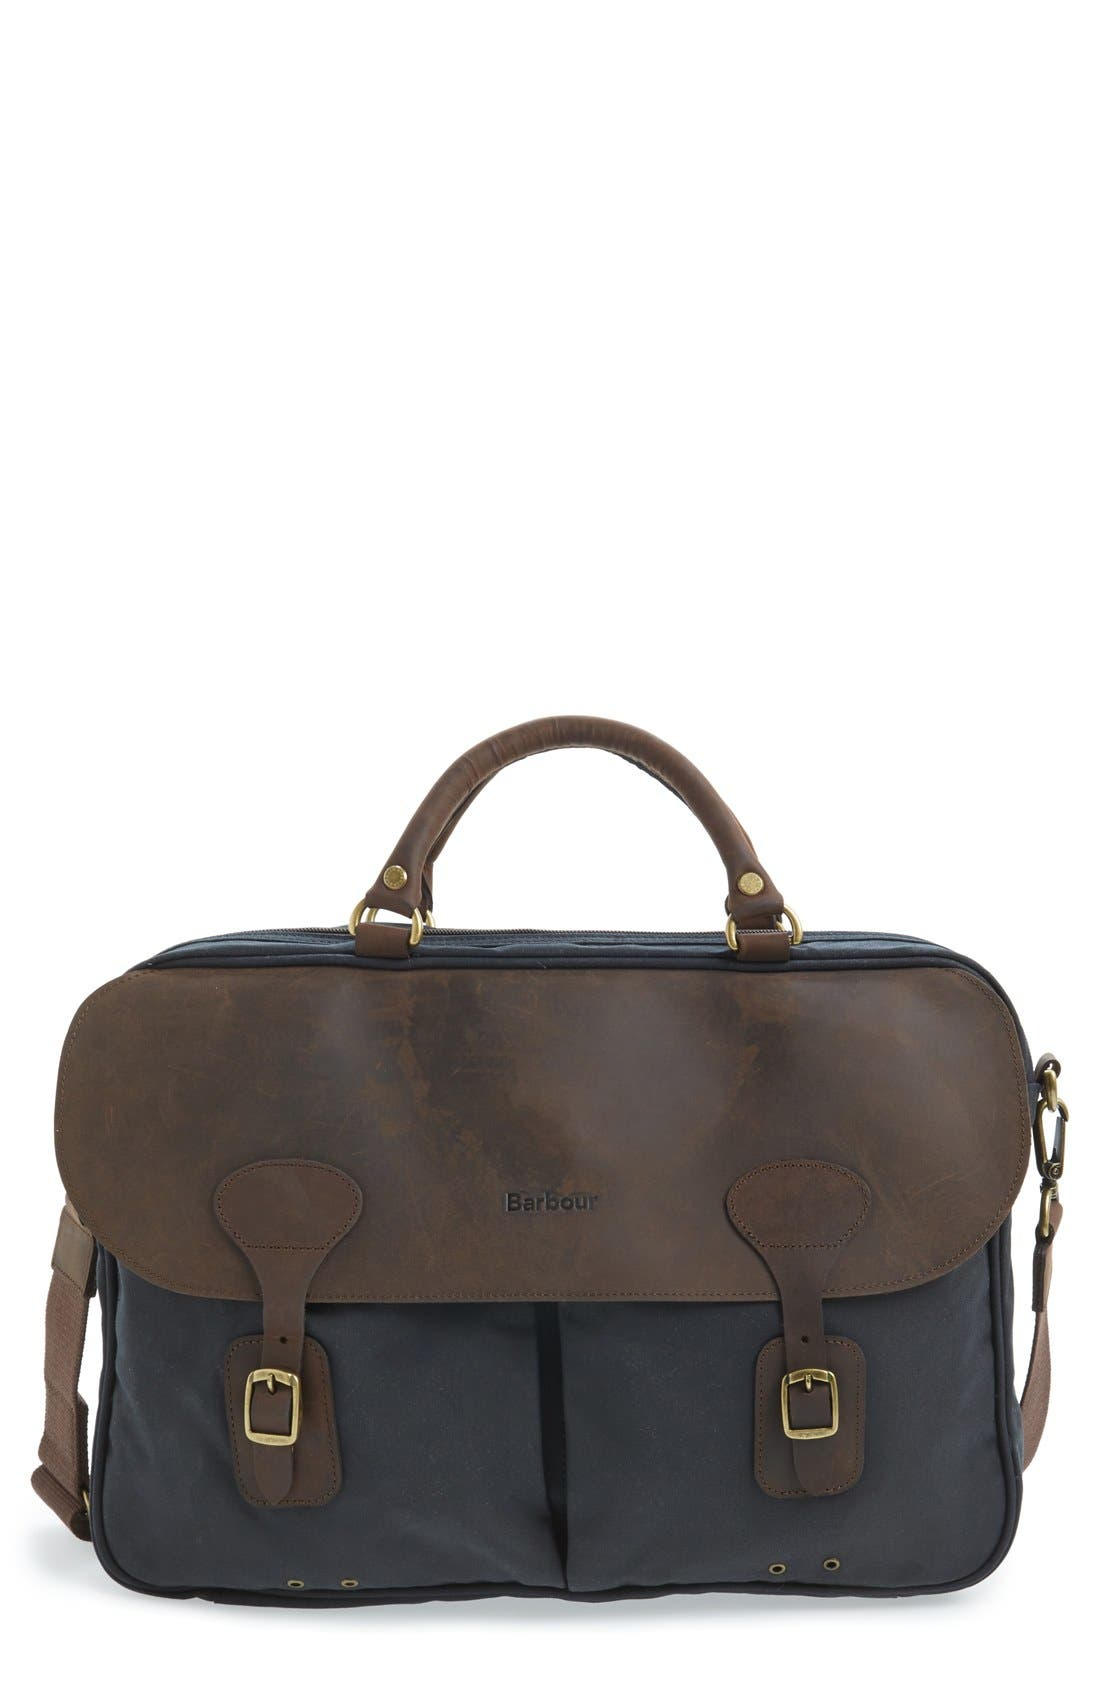 BARBOUR, Waxed Canvas Briefcase, Main thumbnail 1, color, NAVY